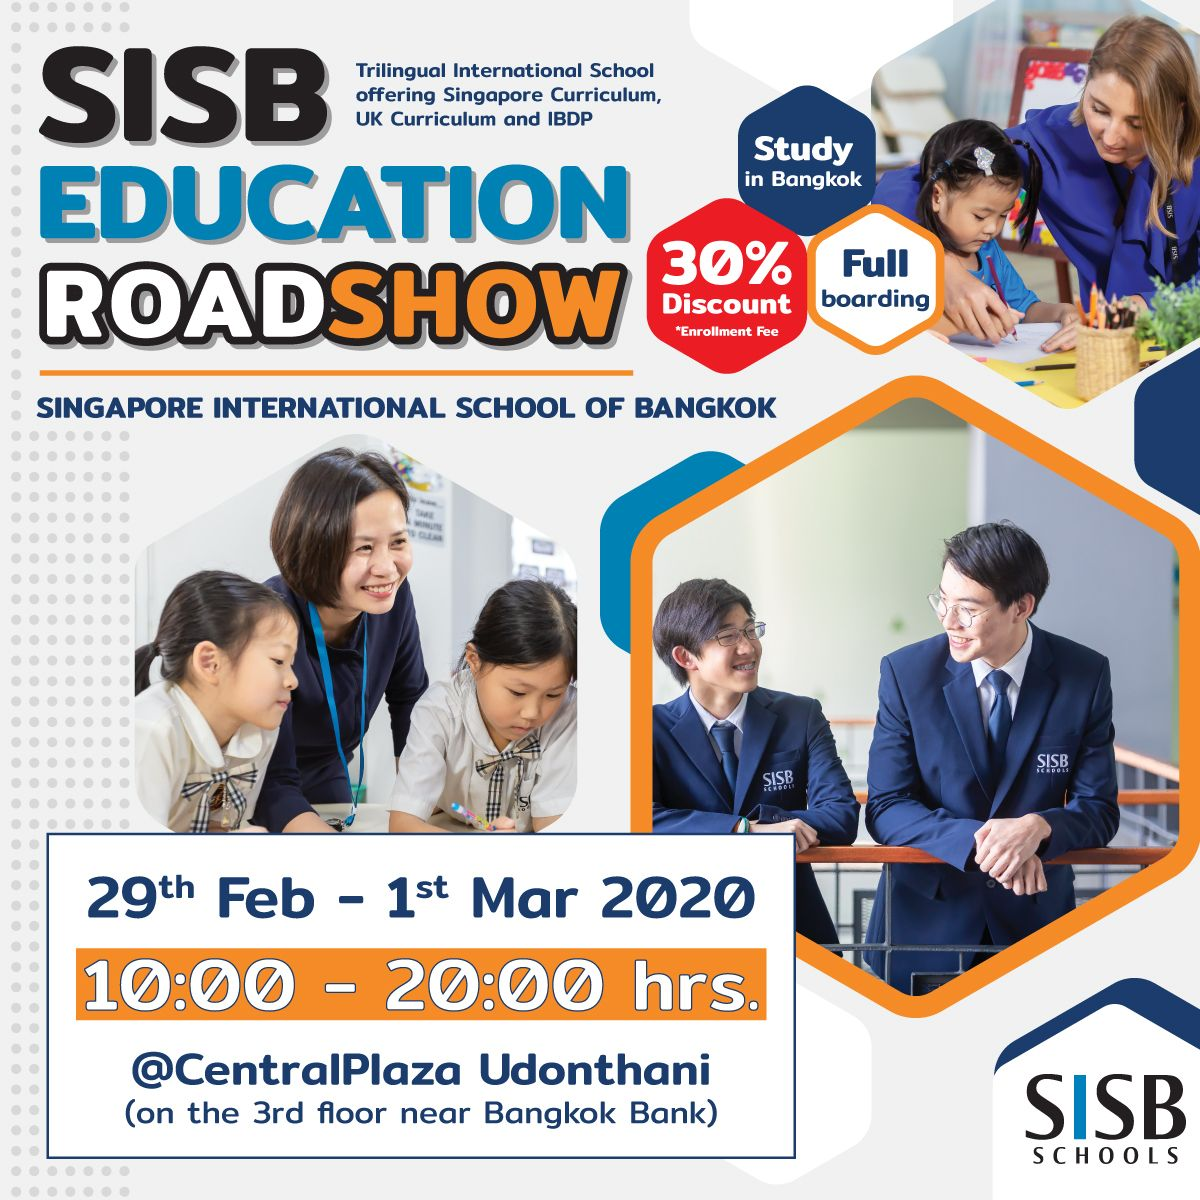 SISB Education Road Show